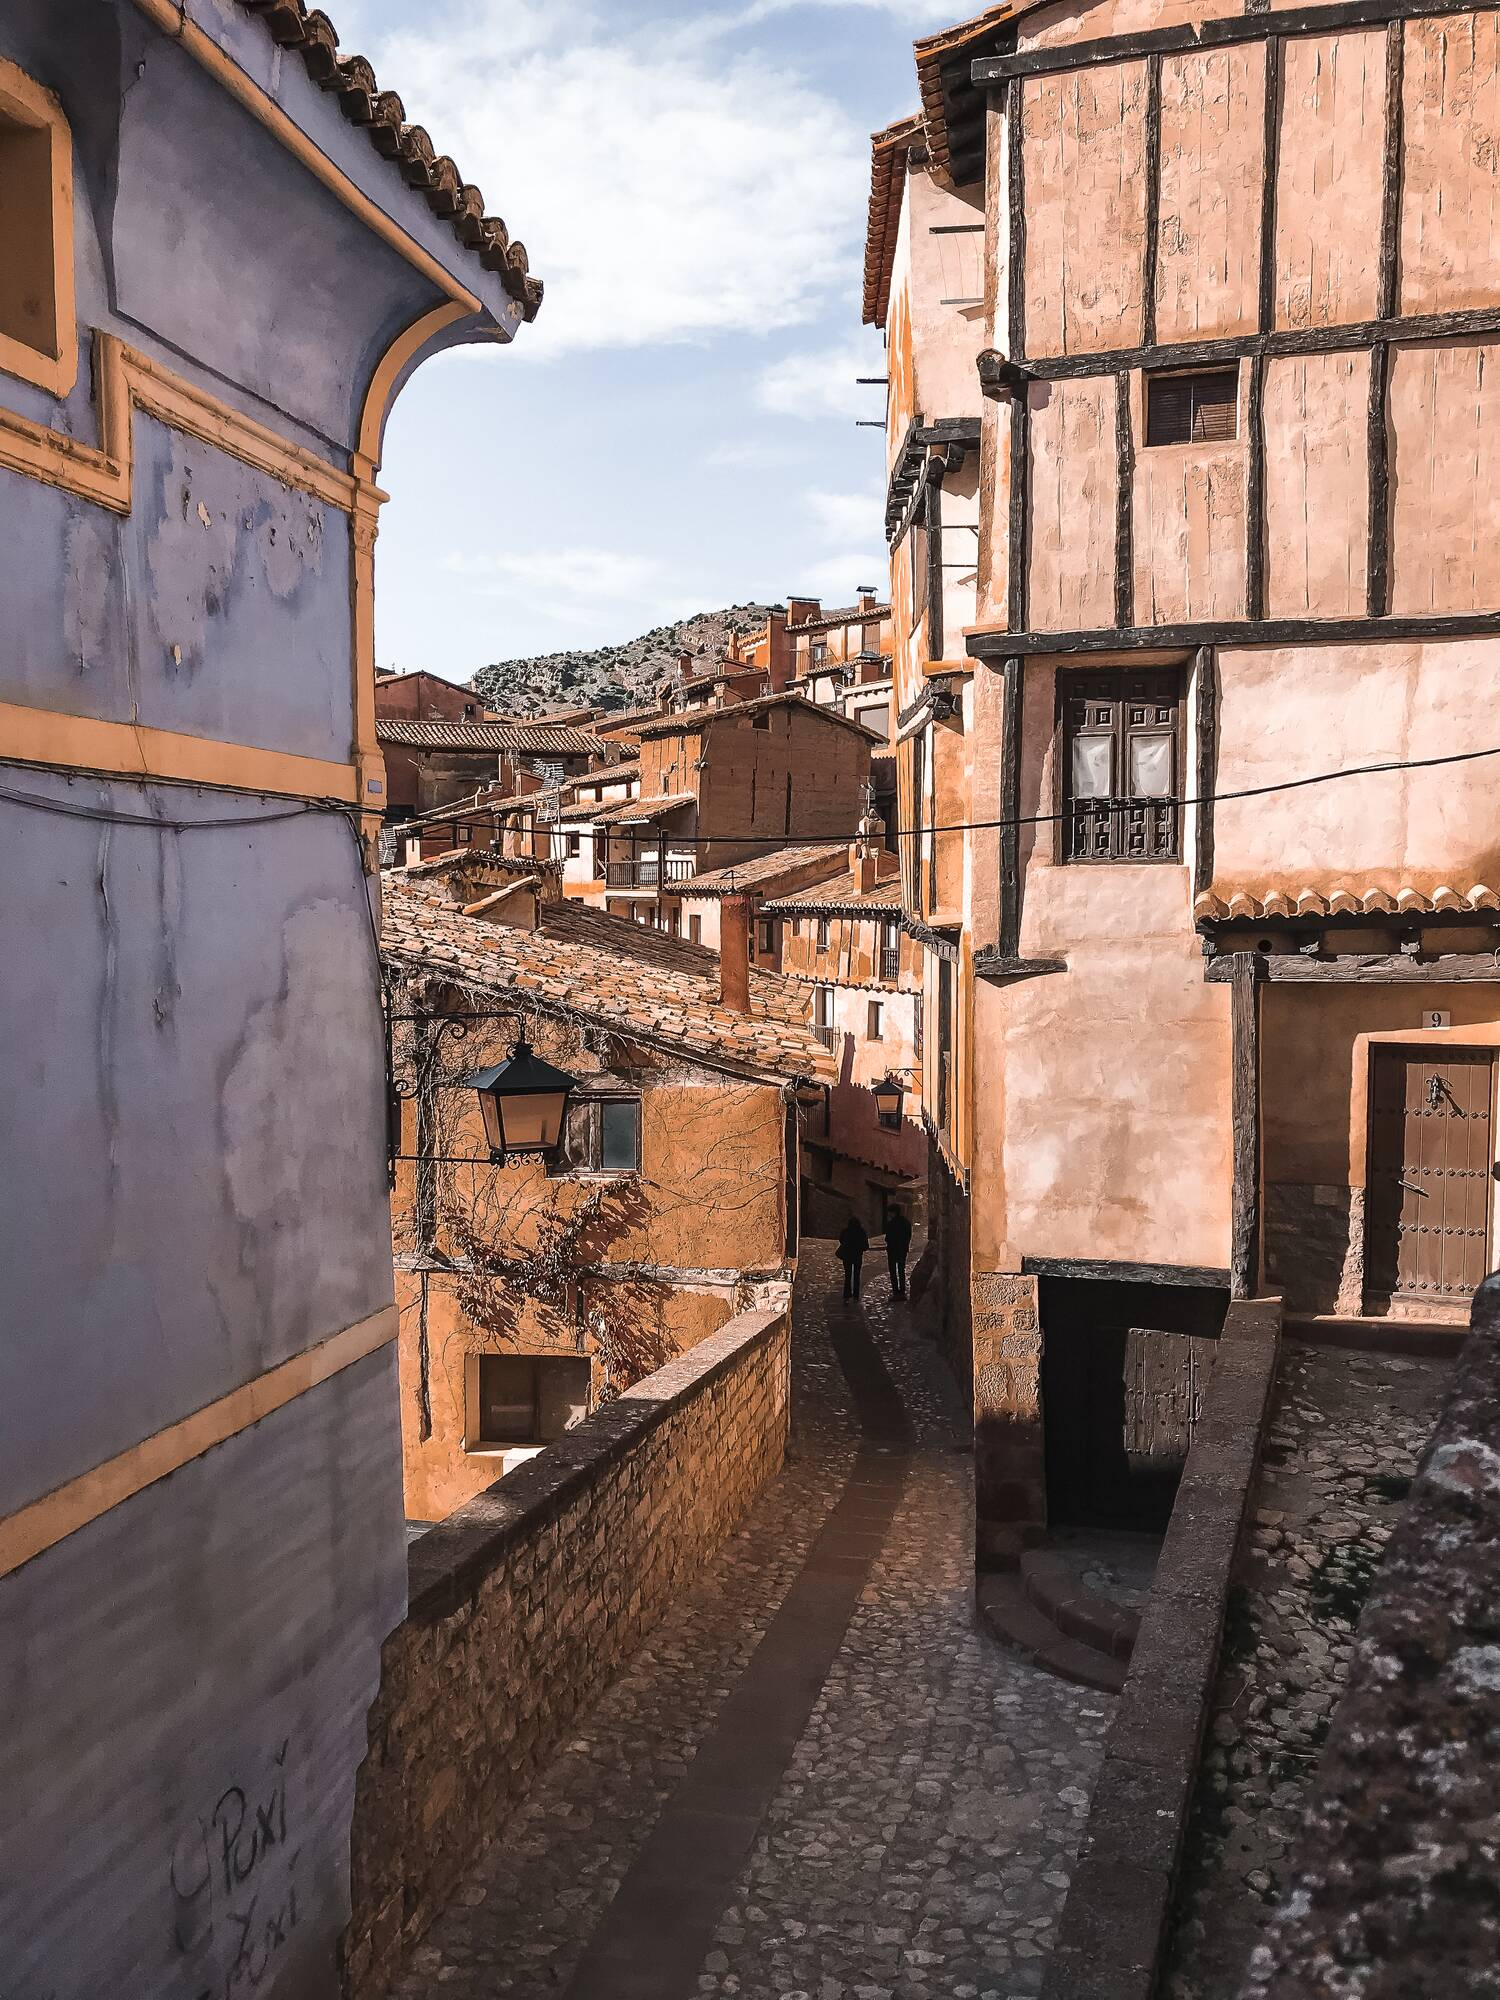 A guide describing how to get to albarracin and what to visit in albarracin